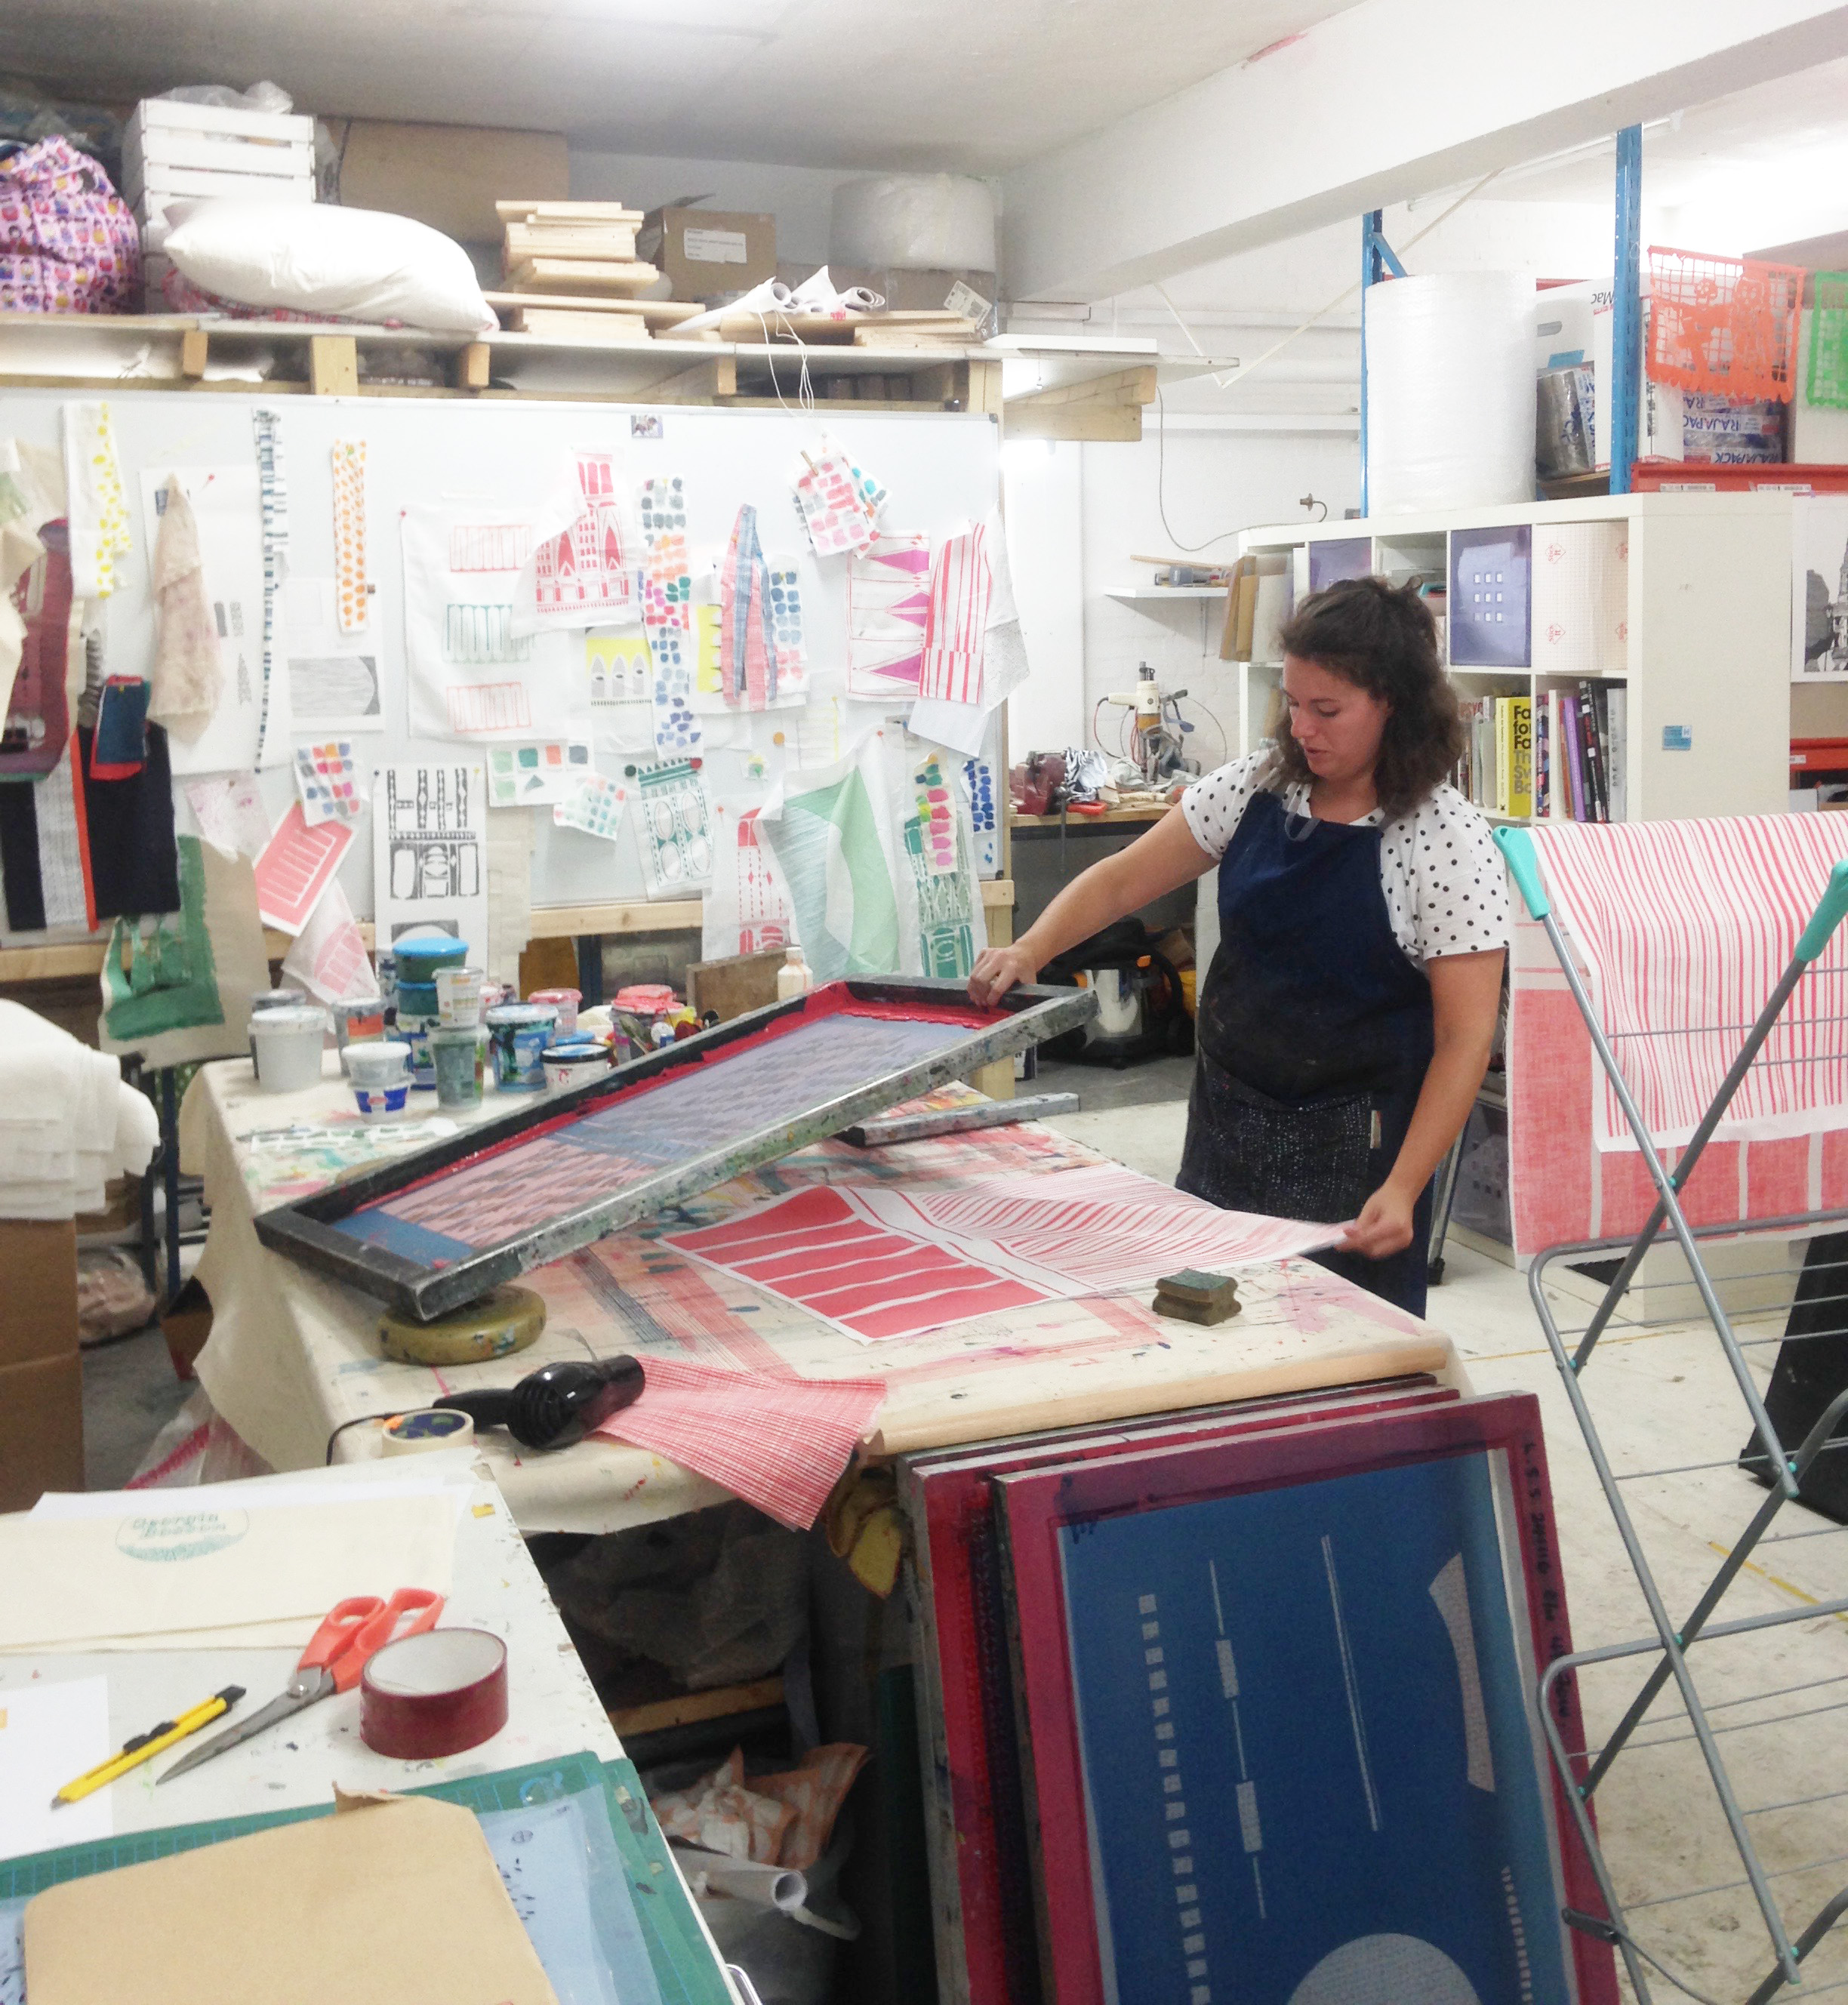 I think this image says it all really, i am incredibly messy when I am in the moment and working on an idea (and all the other times too if I'm honest). I take up a lot of space and am eternally grateful for the patience of the people that I share my studio with.